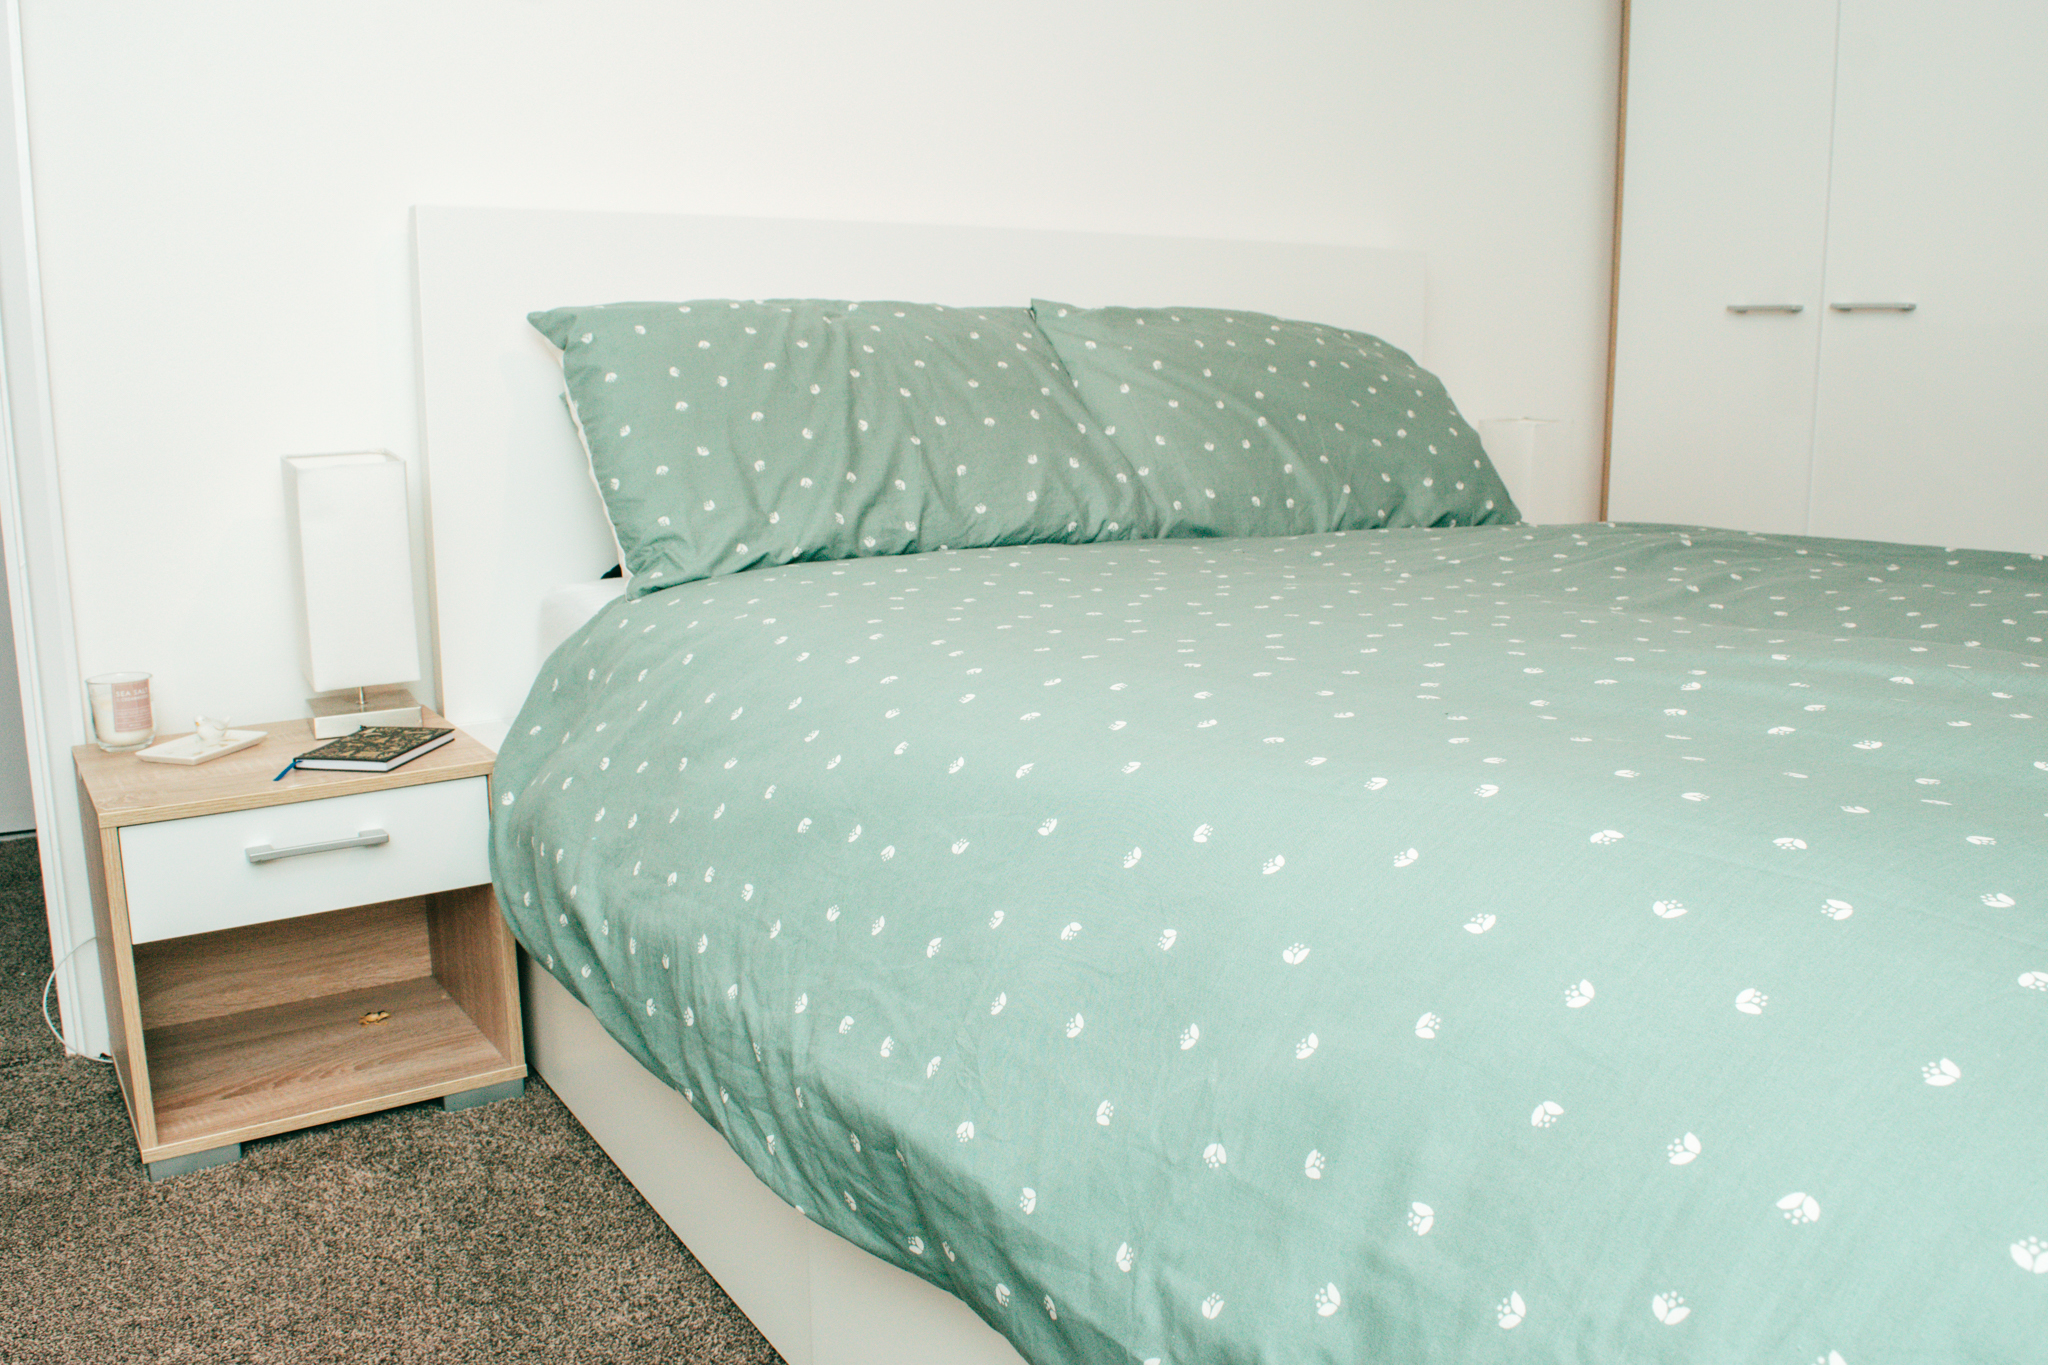 Ikea Malm Bed Frame with Sage Green Duvet